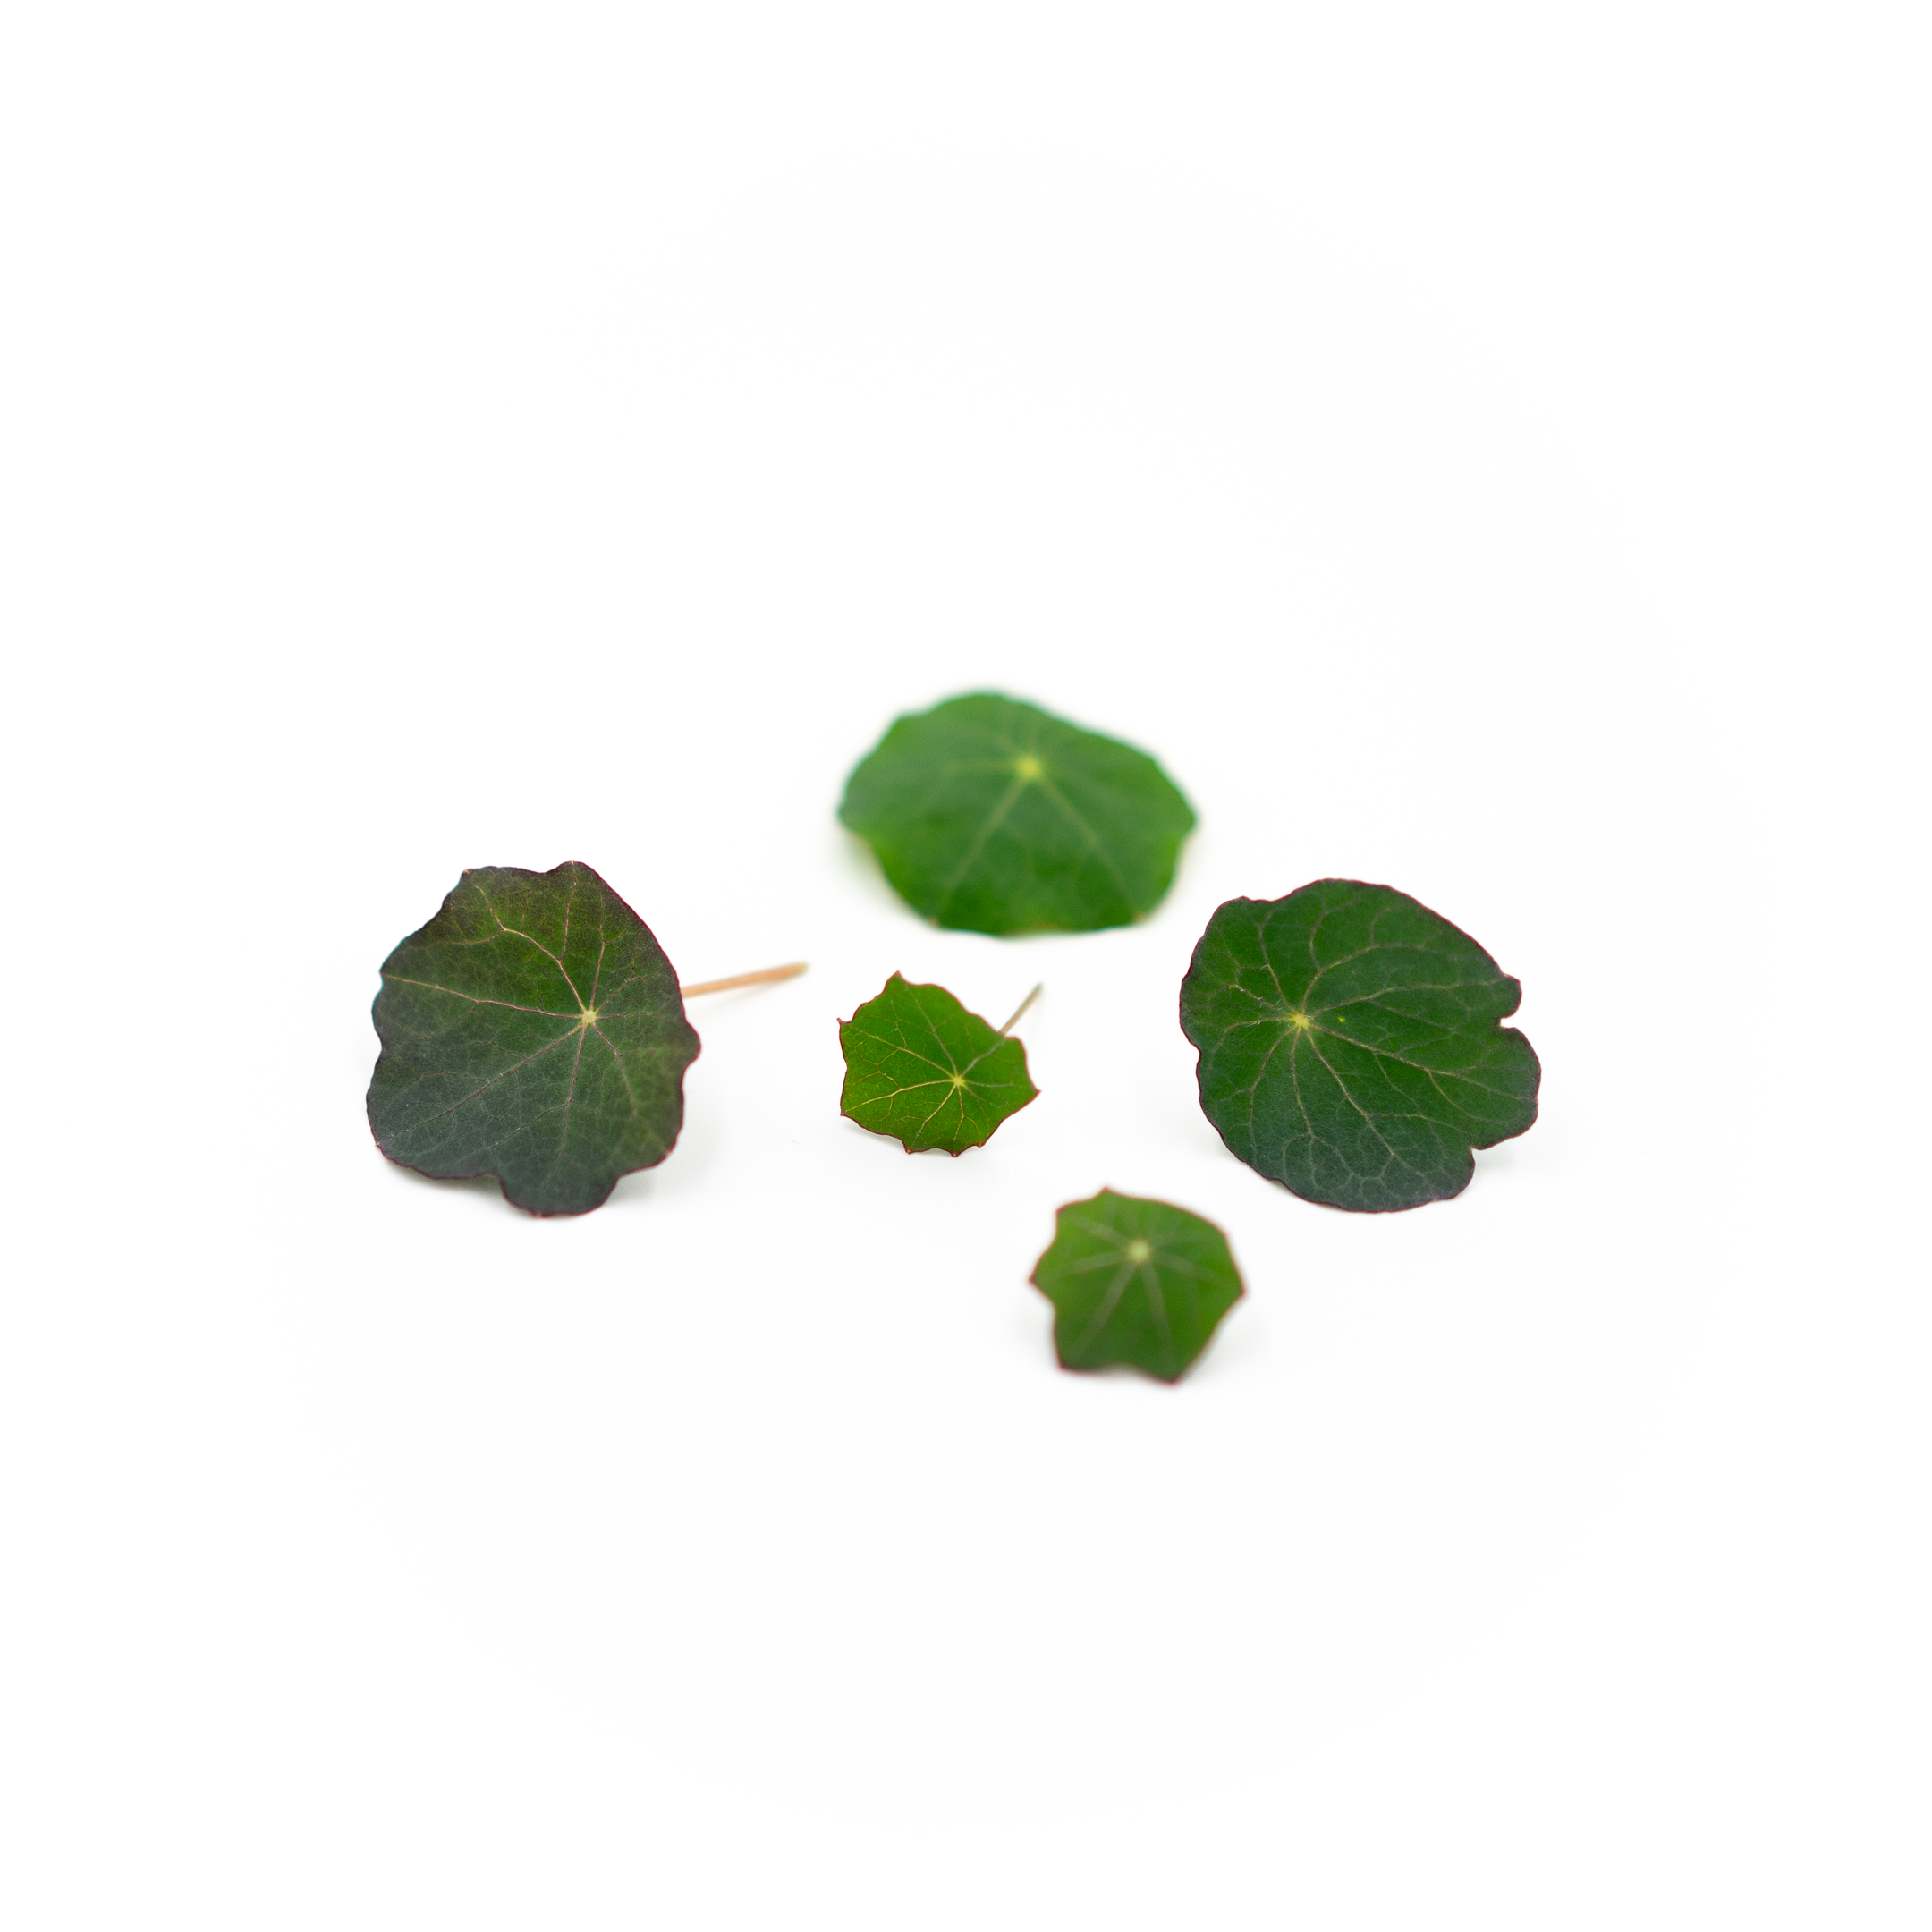 Spicy, peppery herb with soft circular leaves